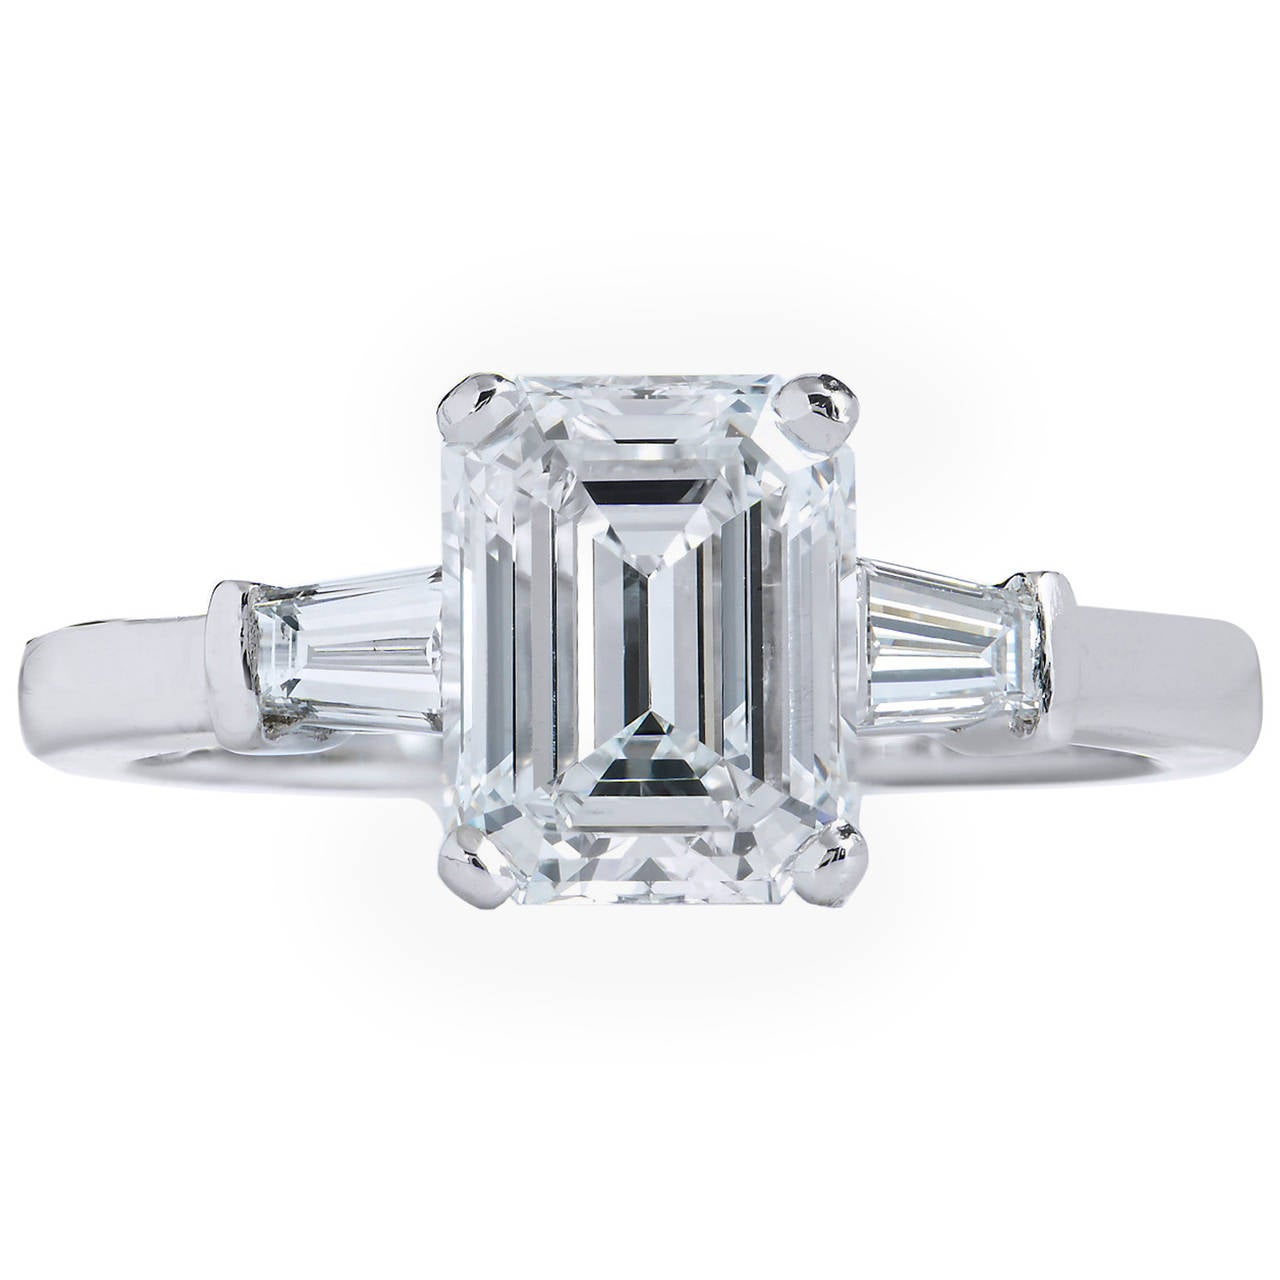 Bvlgari 2 01 Carat GIA Cert Emerald Cut Diamond Platinum Engagement Ring at 1